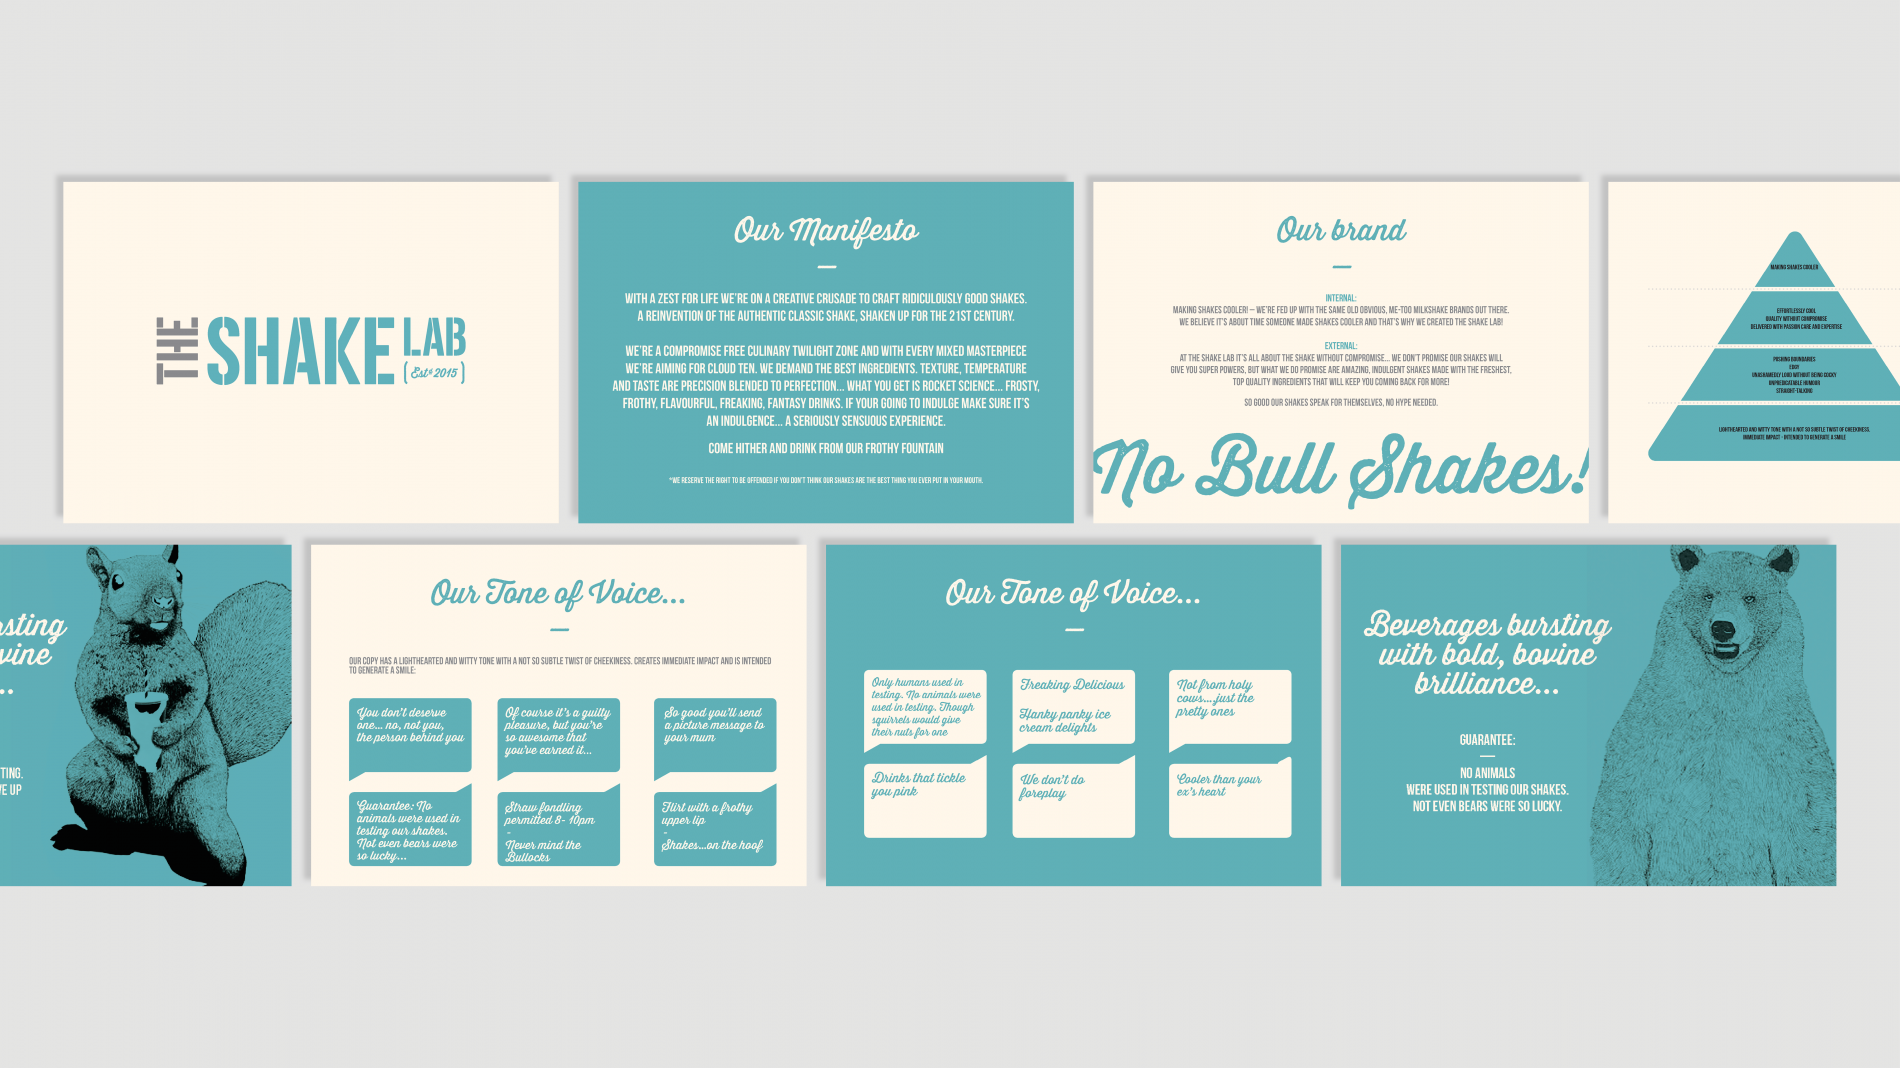 The Shake Lab brand guidelines pages